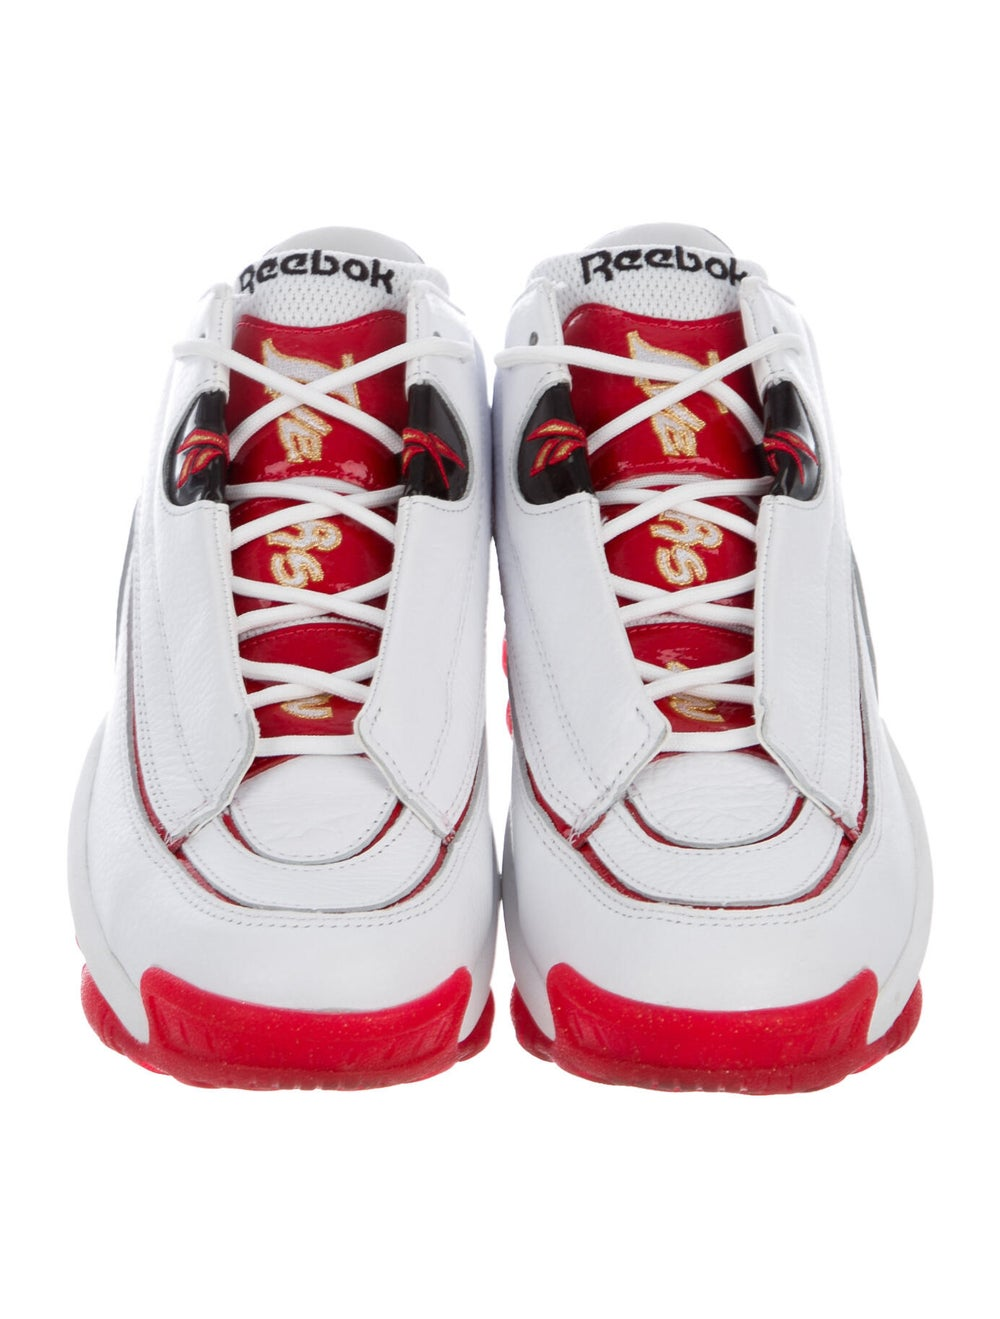 Reebok 2018 The Answer DMX Sneakers white - image 3